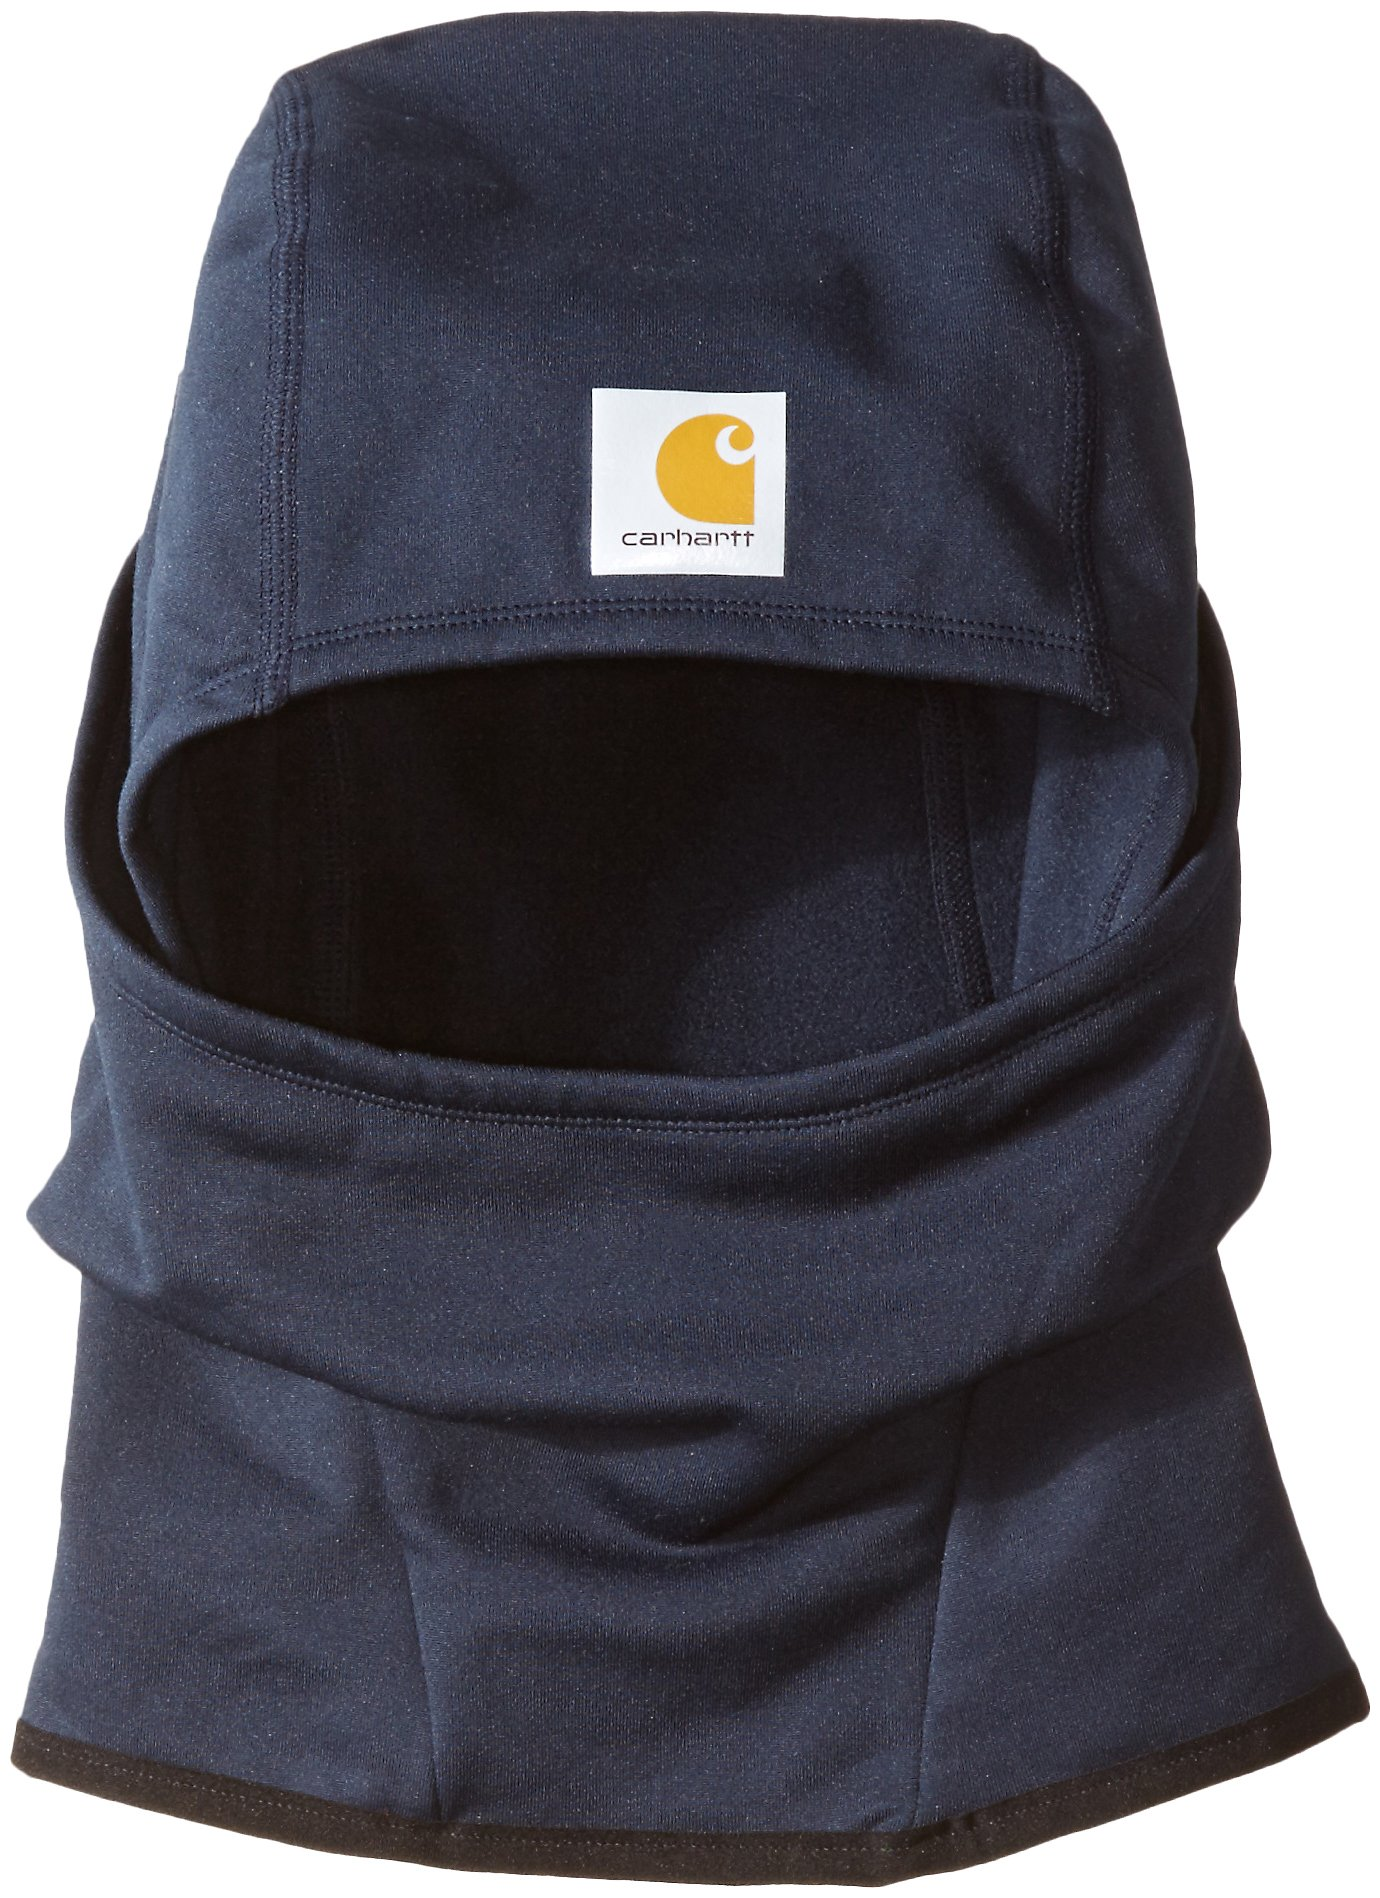 Carhartt Men's Helmet Liner Mask, Navy, One Size by Carhartt